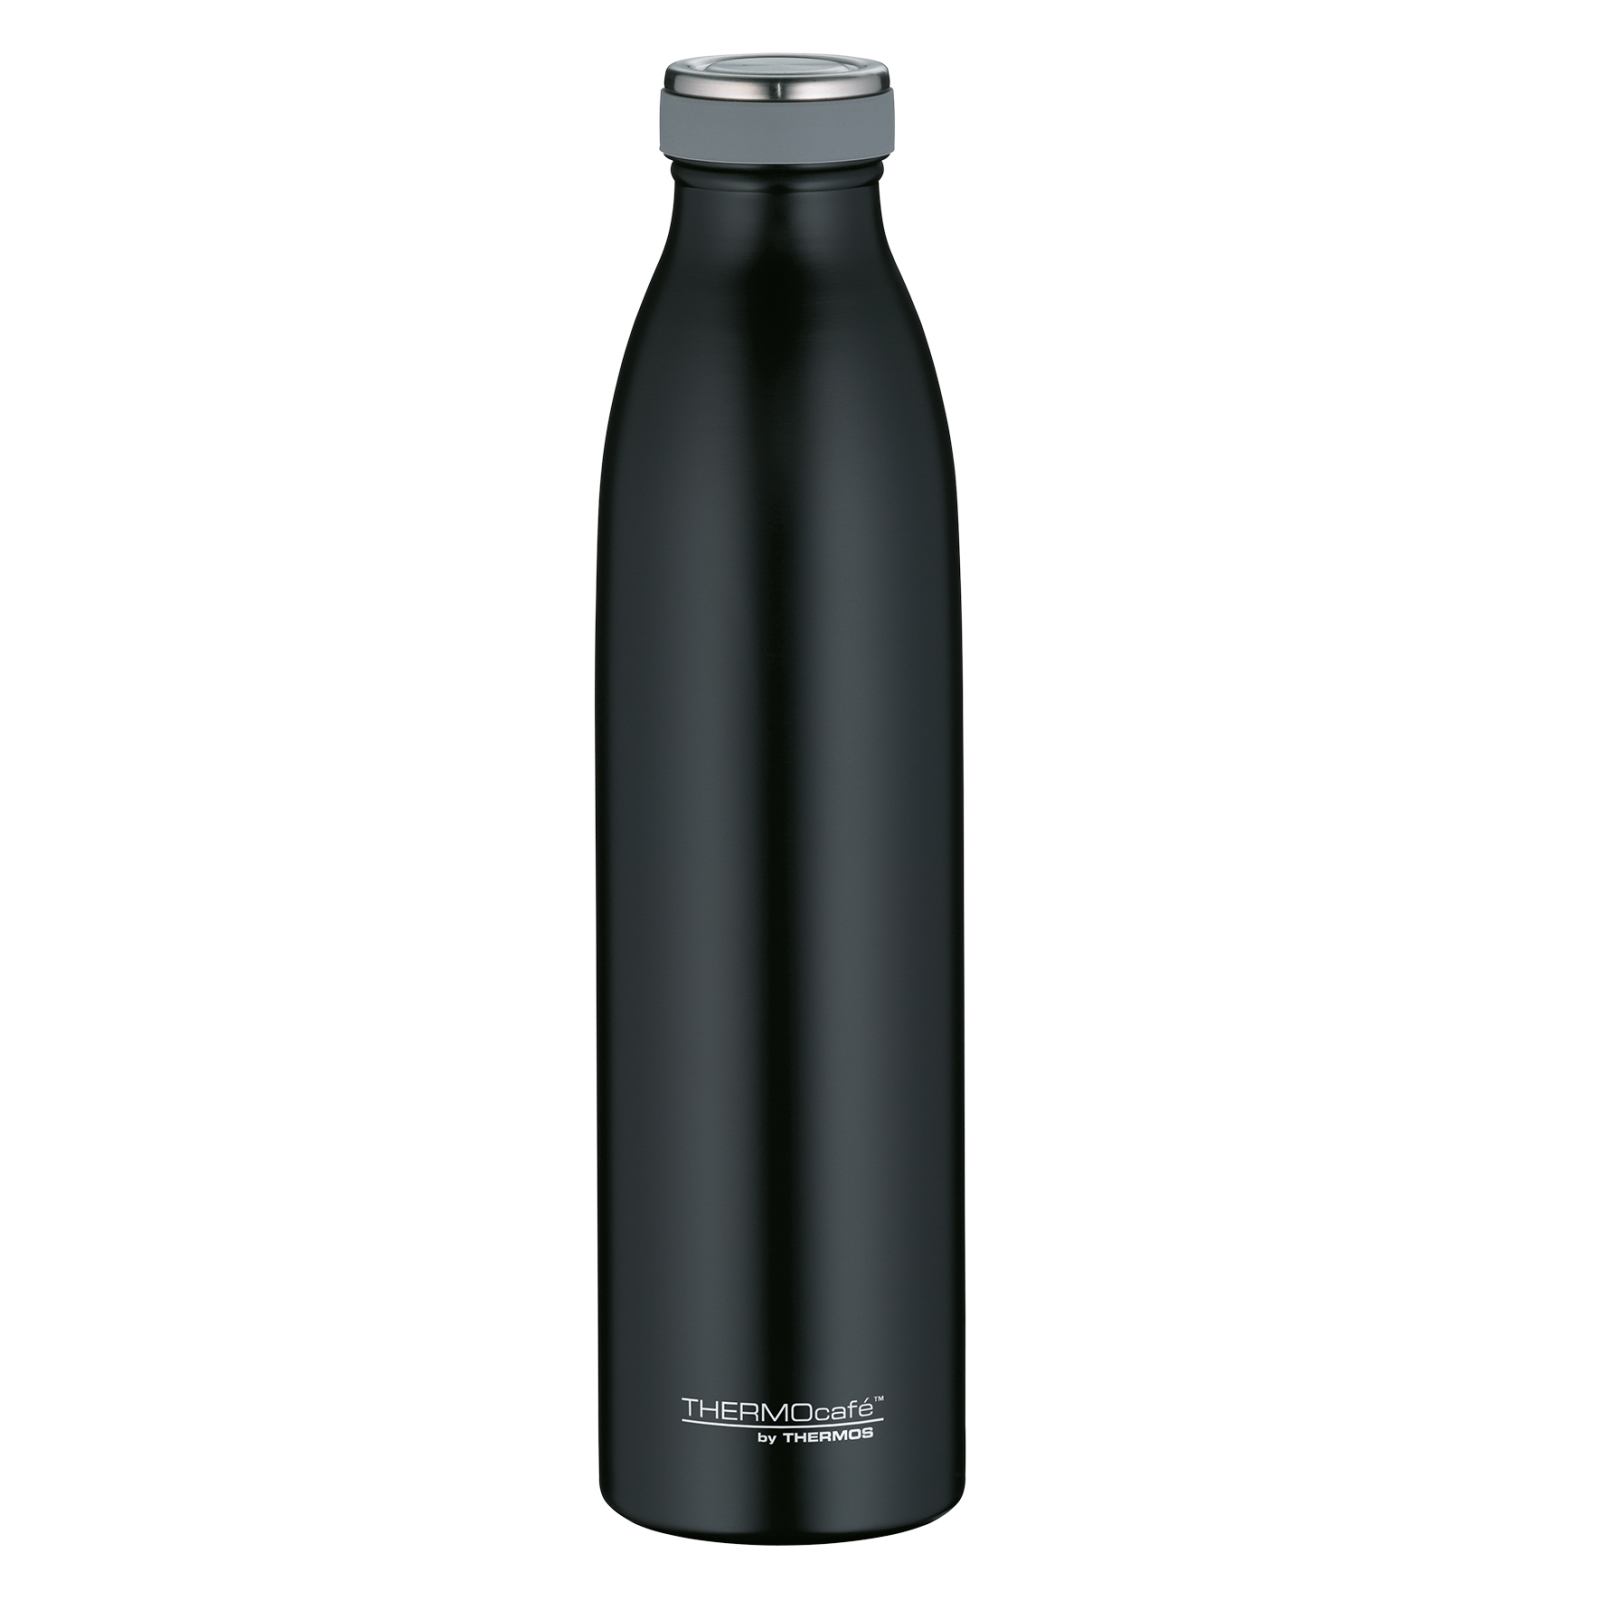 TC Bottle Thermosflasche Schwarz Matt 0,75 Liter Isolierflasche